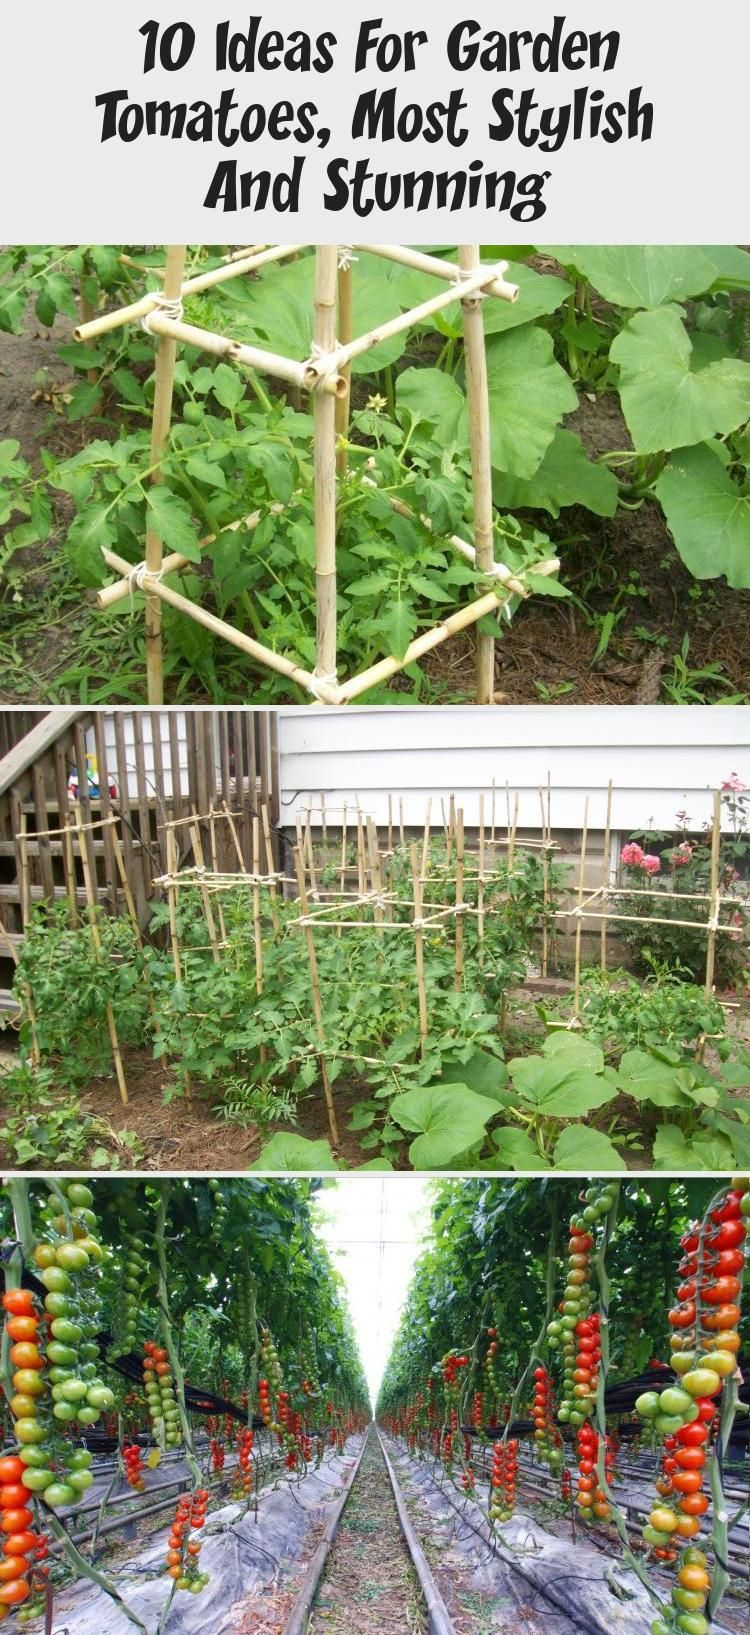 10 Ideas For Garden Tomatoes Most Stylish And Stunning Smallgardenbeds Gardenbedsfurniture Gardenb Tomato Garden Garden Beds Vegetable Garden For Beginners